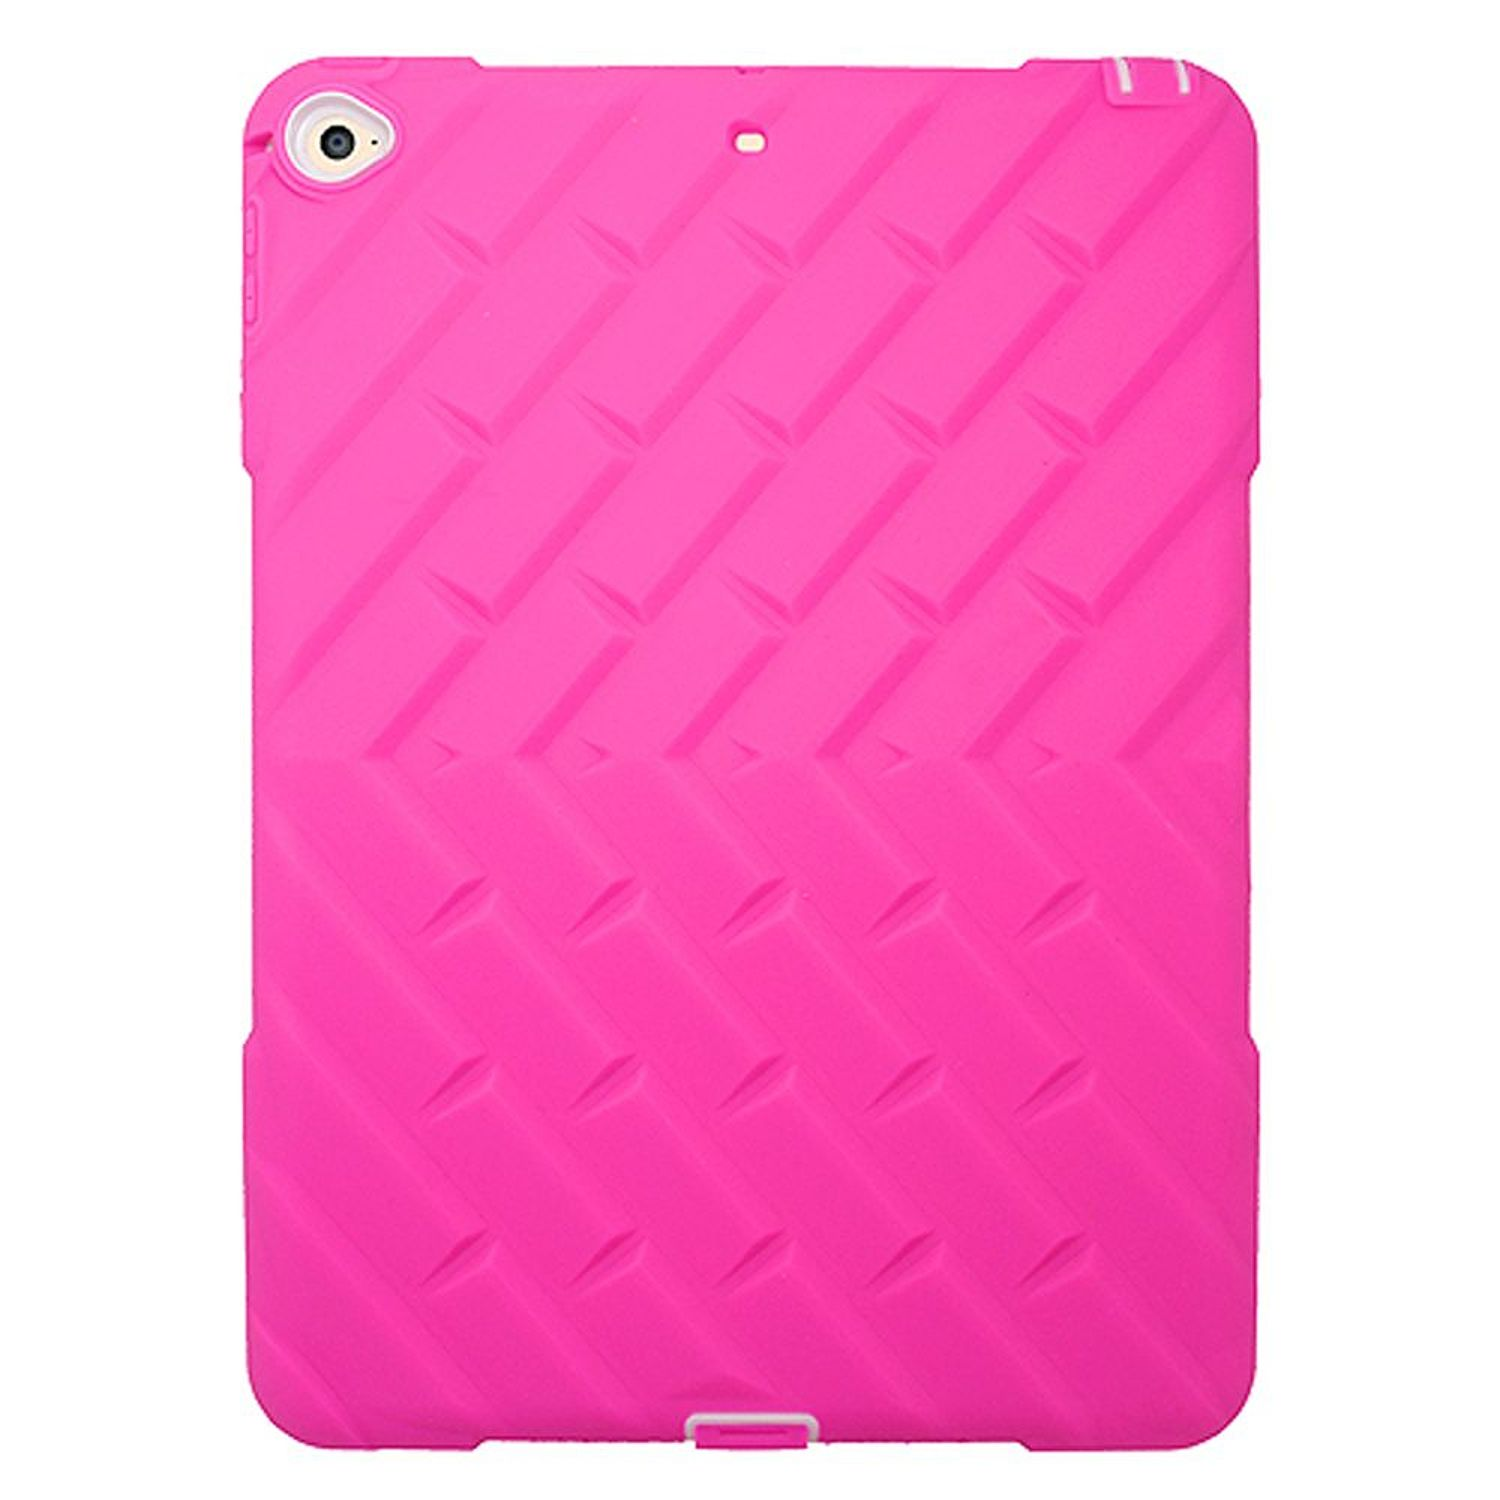 iPad Air 2 Case, by Insten Dual Layer [Shock Absorbing] Hybrid Rubber Silicone/Plastic iPad Cover Case For Apple iPad Air 2 - Hot Pink/White